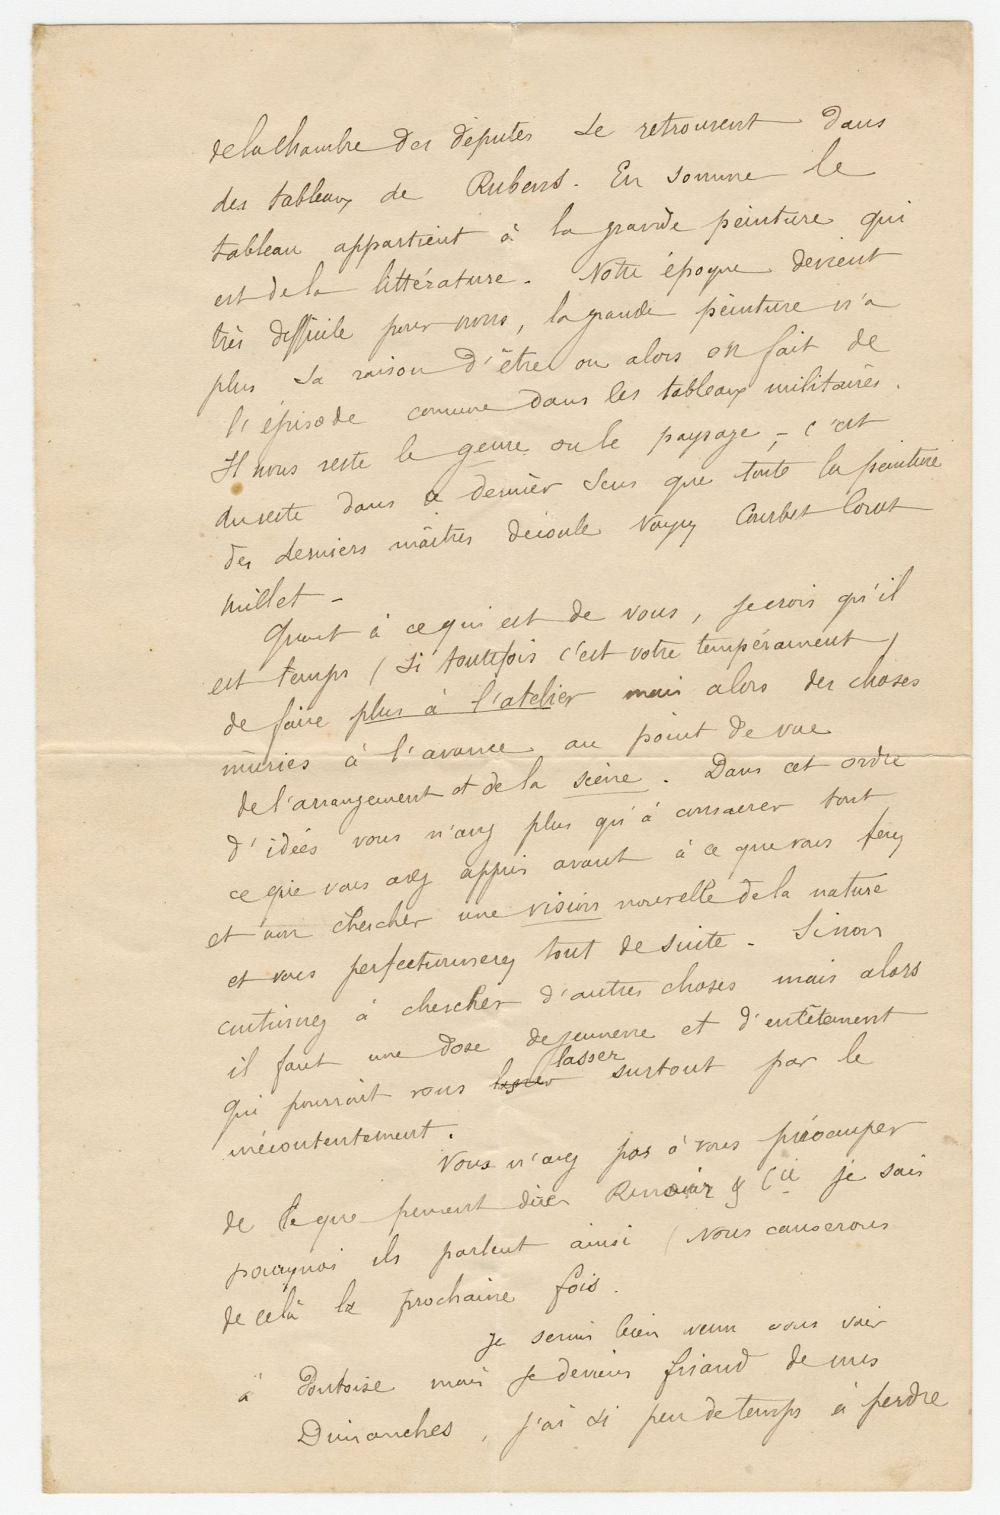 """Best Gauguin ALS! To Camille Pissarro, Discussing Renoir, Delacroix, Rubens, Courbet, Corot, & Millet, & Considering his Future as a Full-Time Artist: """"I have it in my head that I would become a painter"""""""